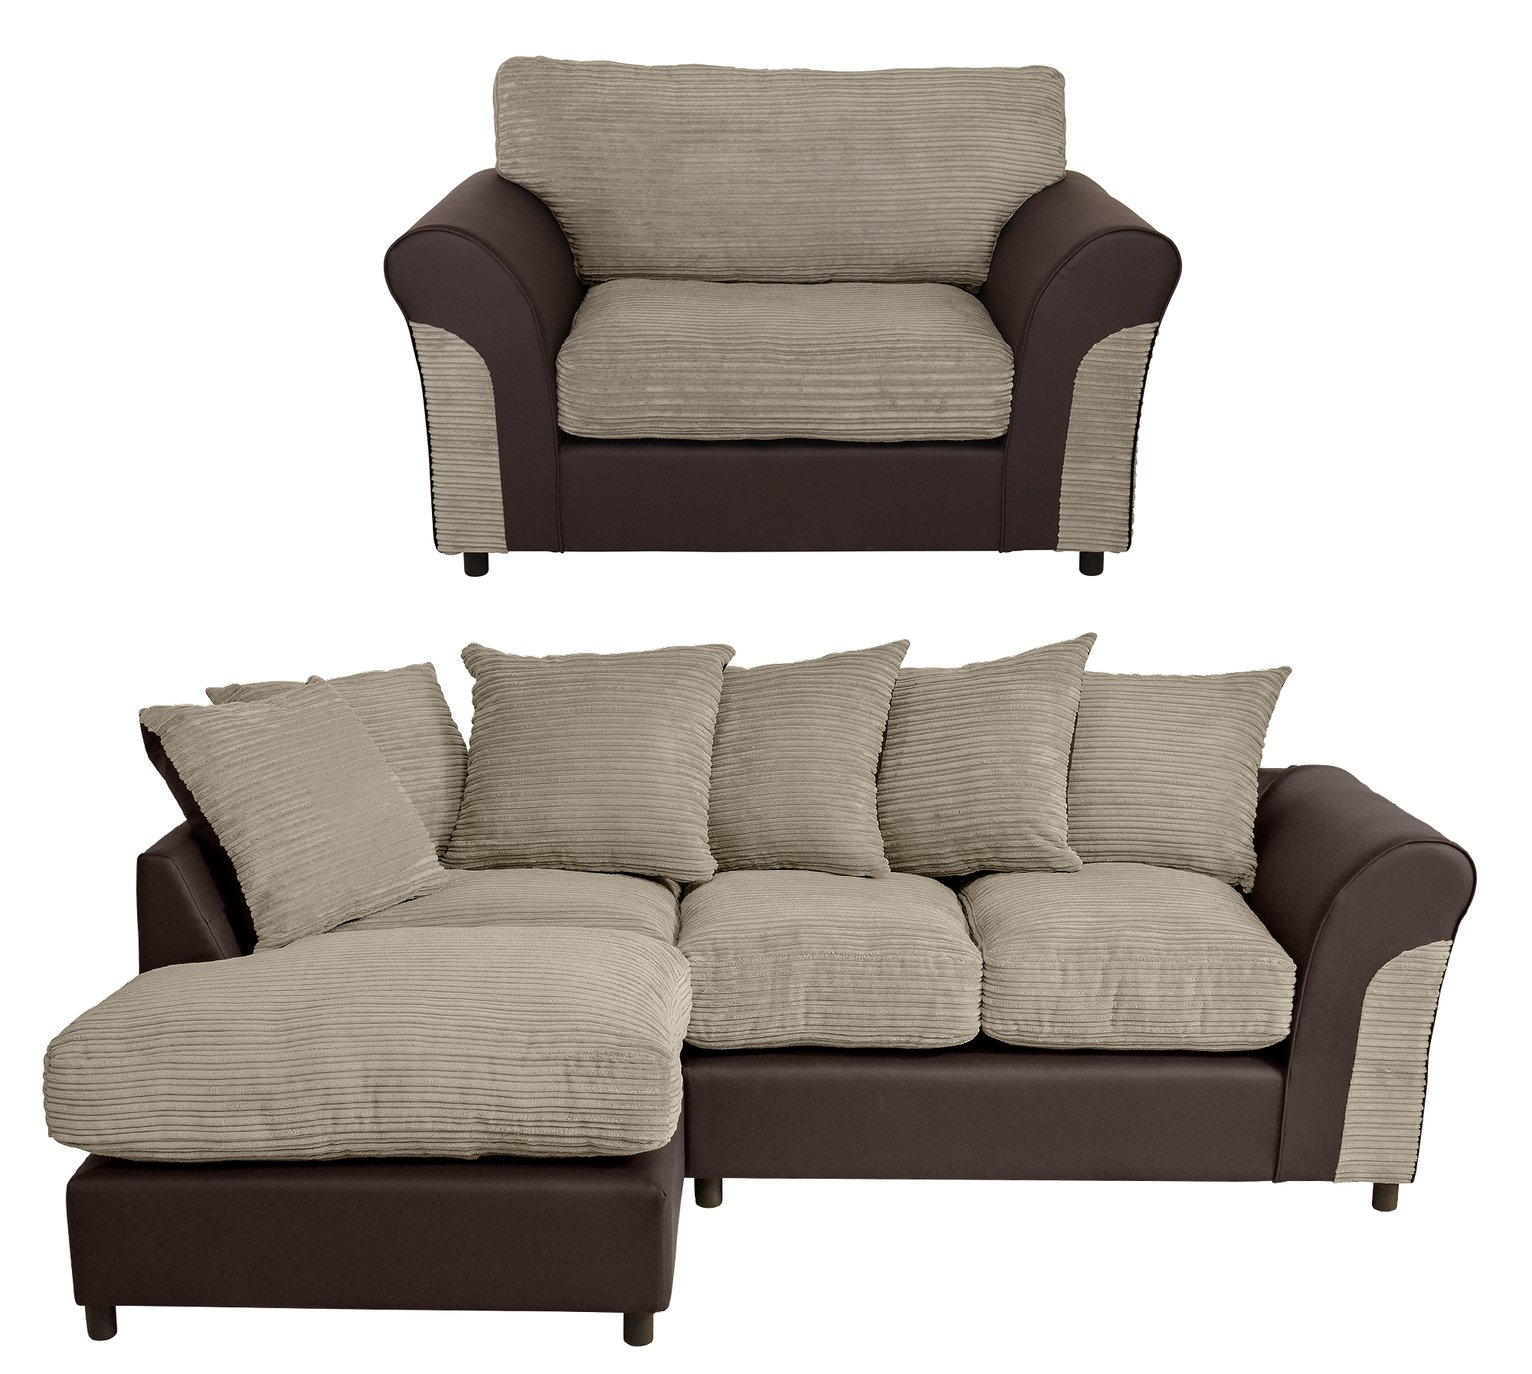 Argos Home Harry Fabric Chair and Left Corner Sofa review